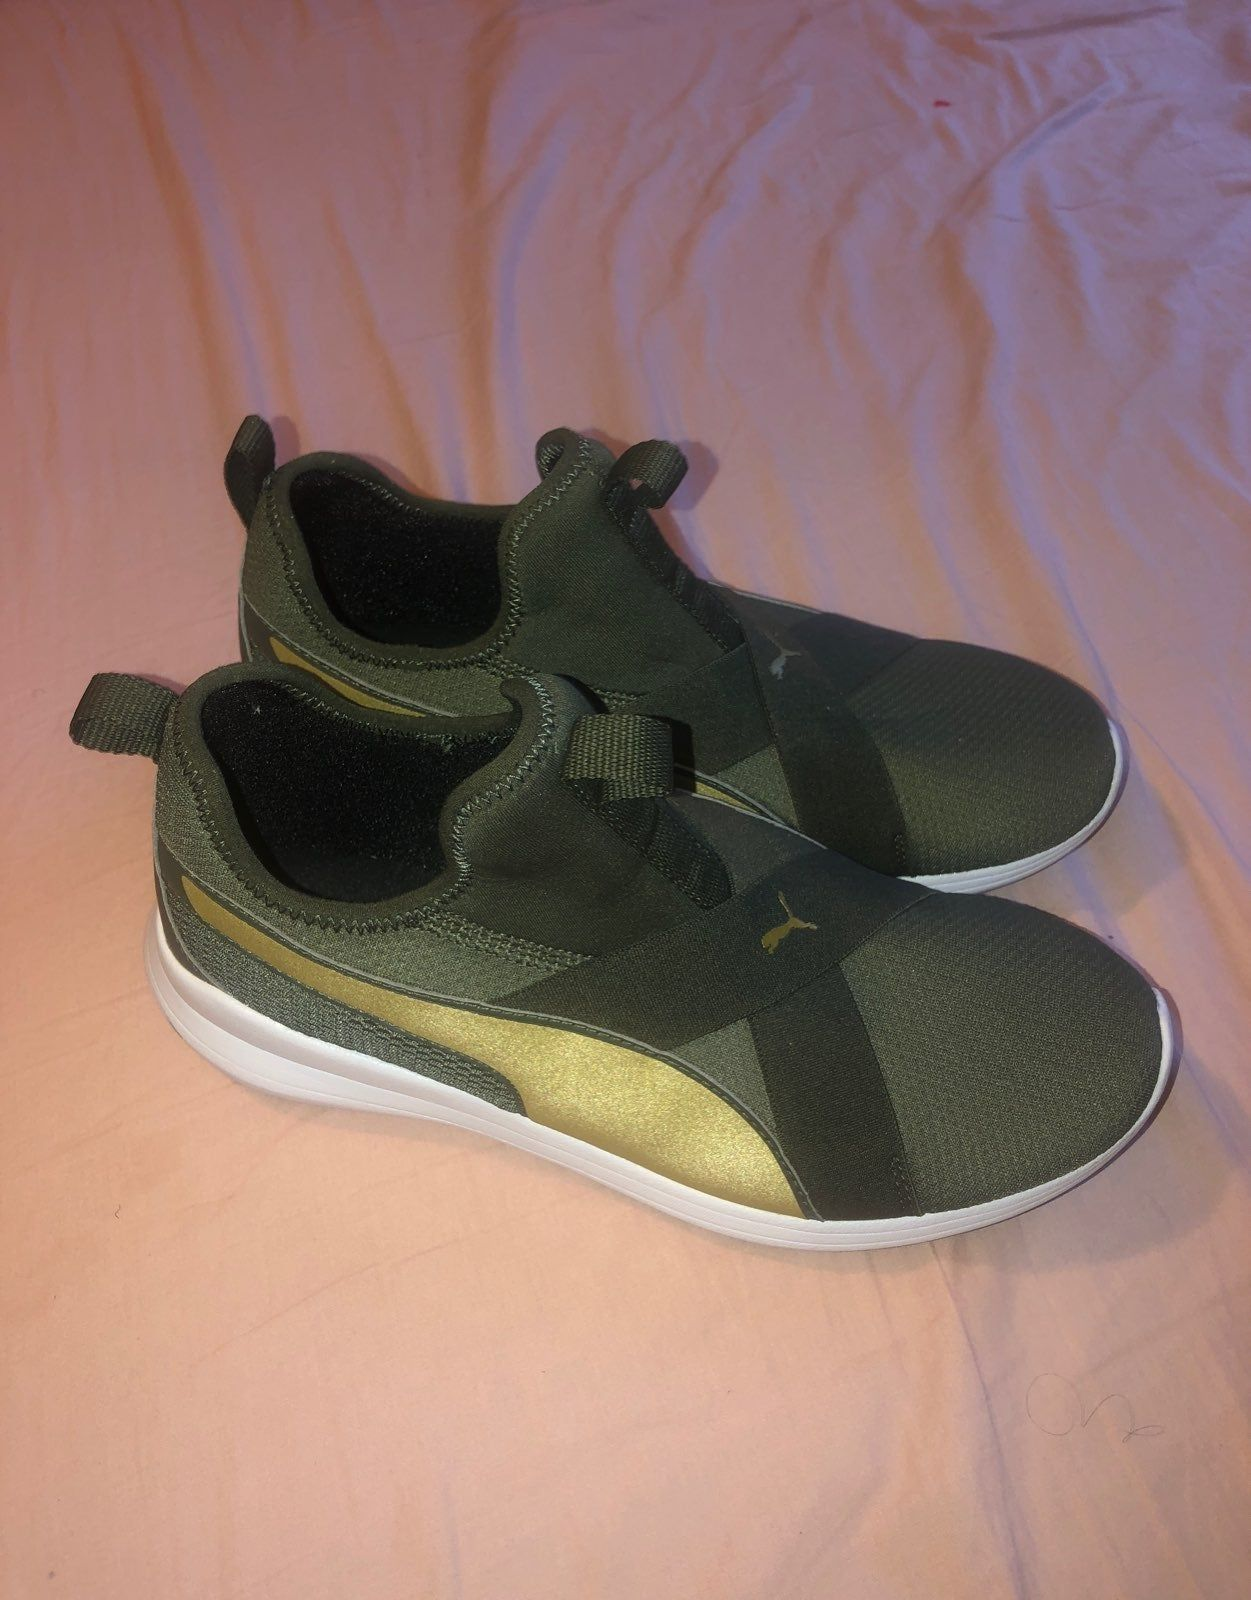 These sneakers are olive green and gold